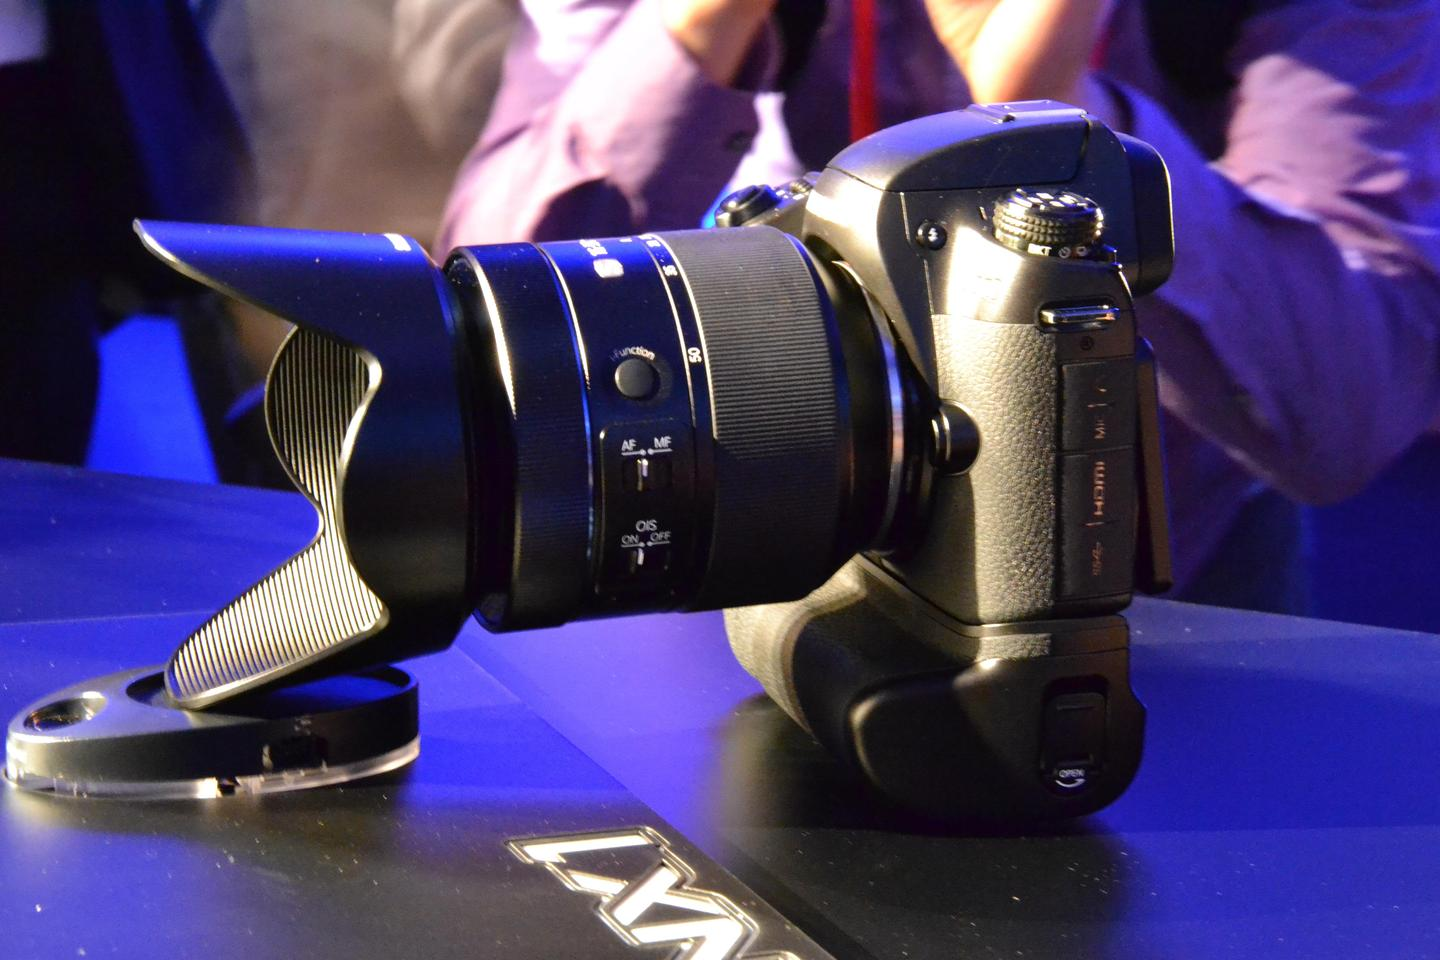 Samsung aims for the pros with the NX1 compact system camera